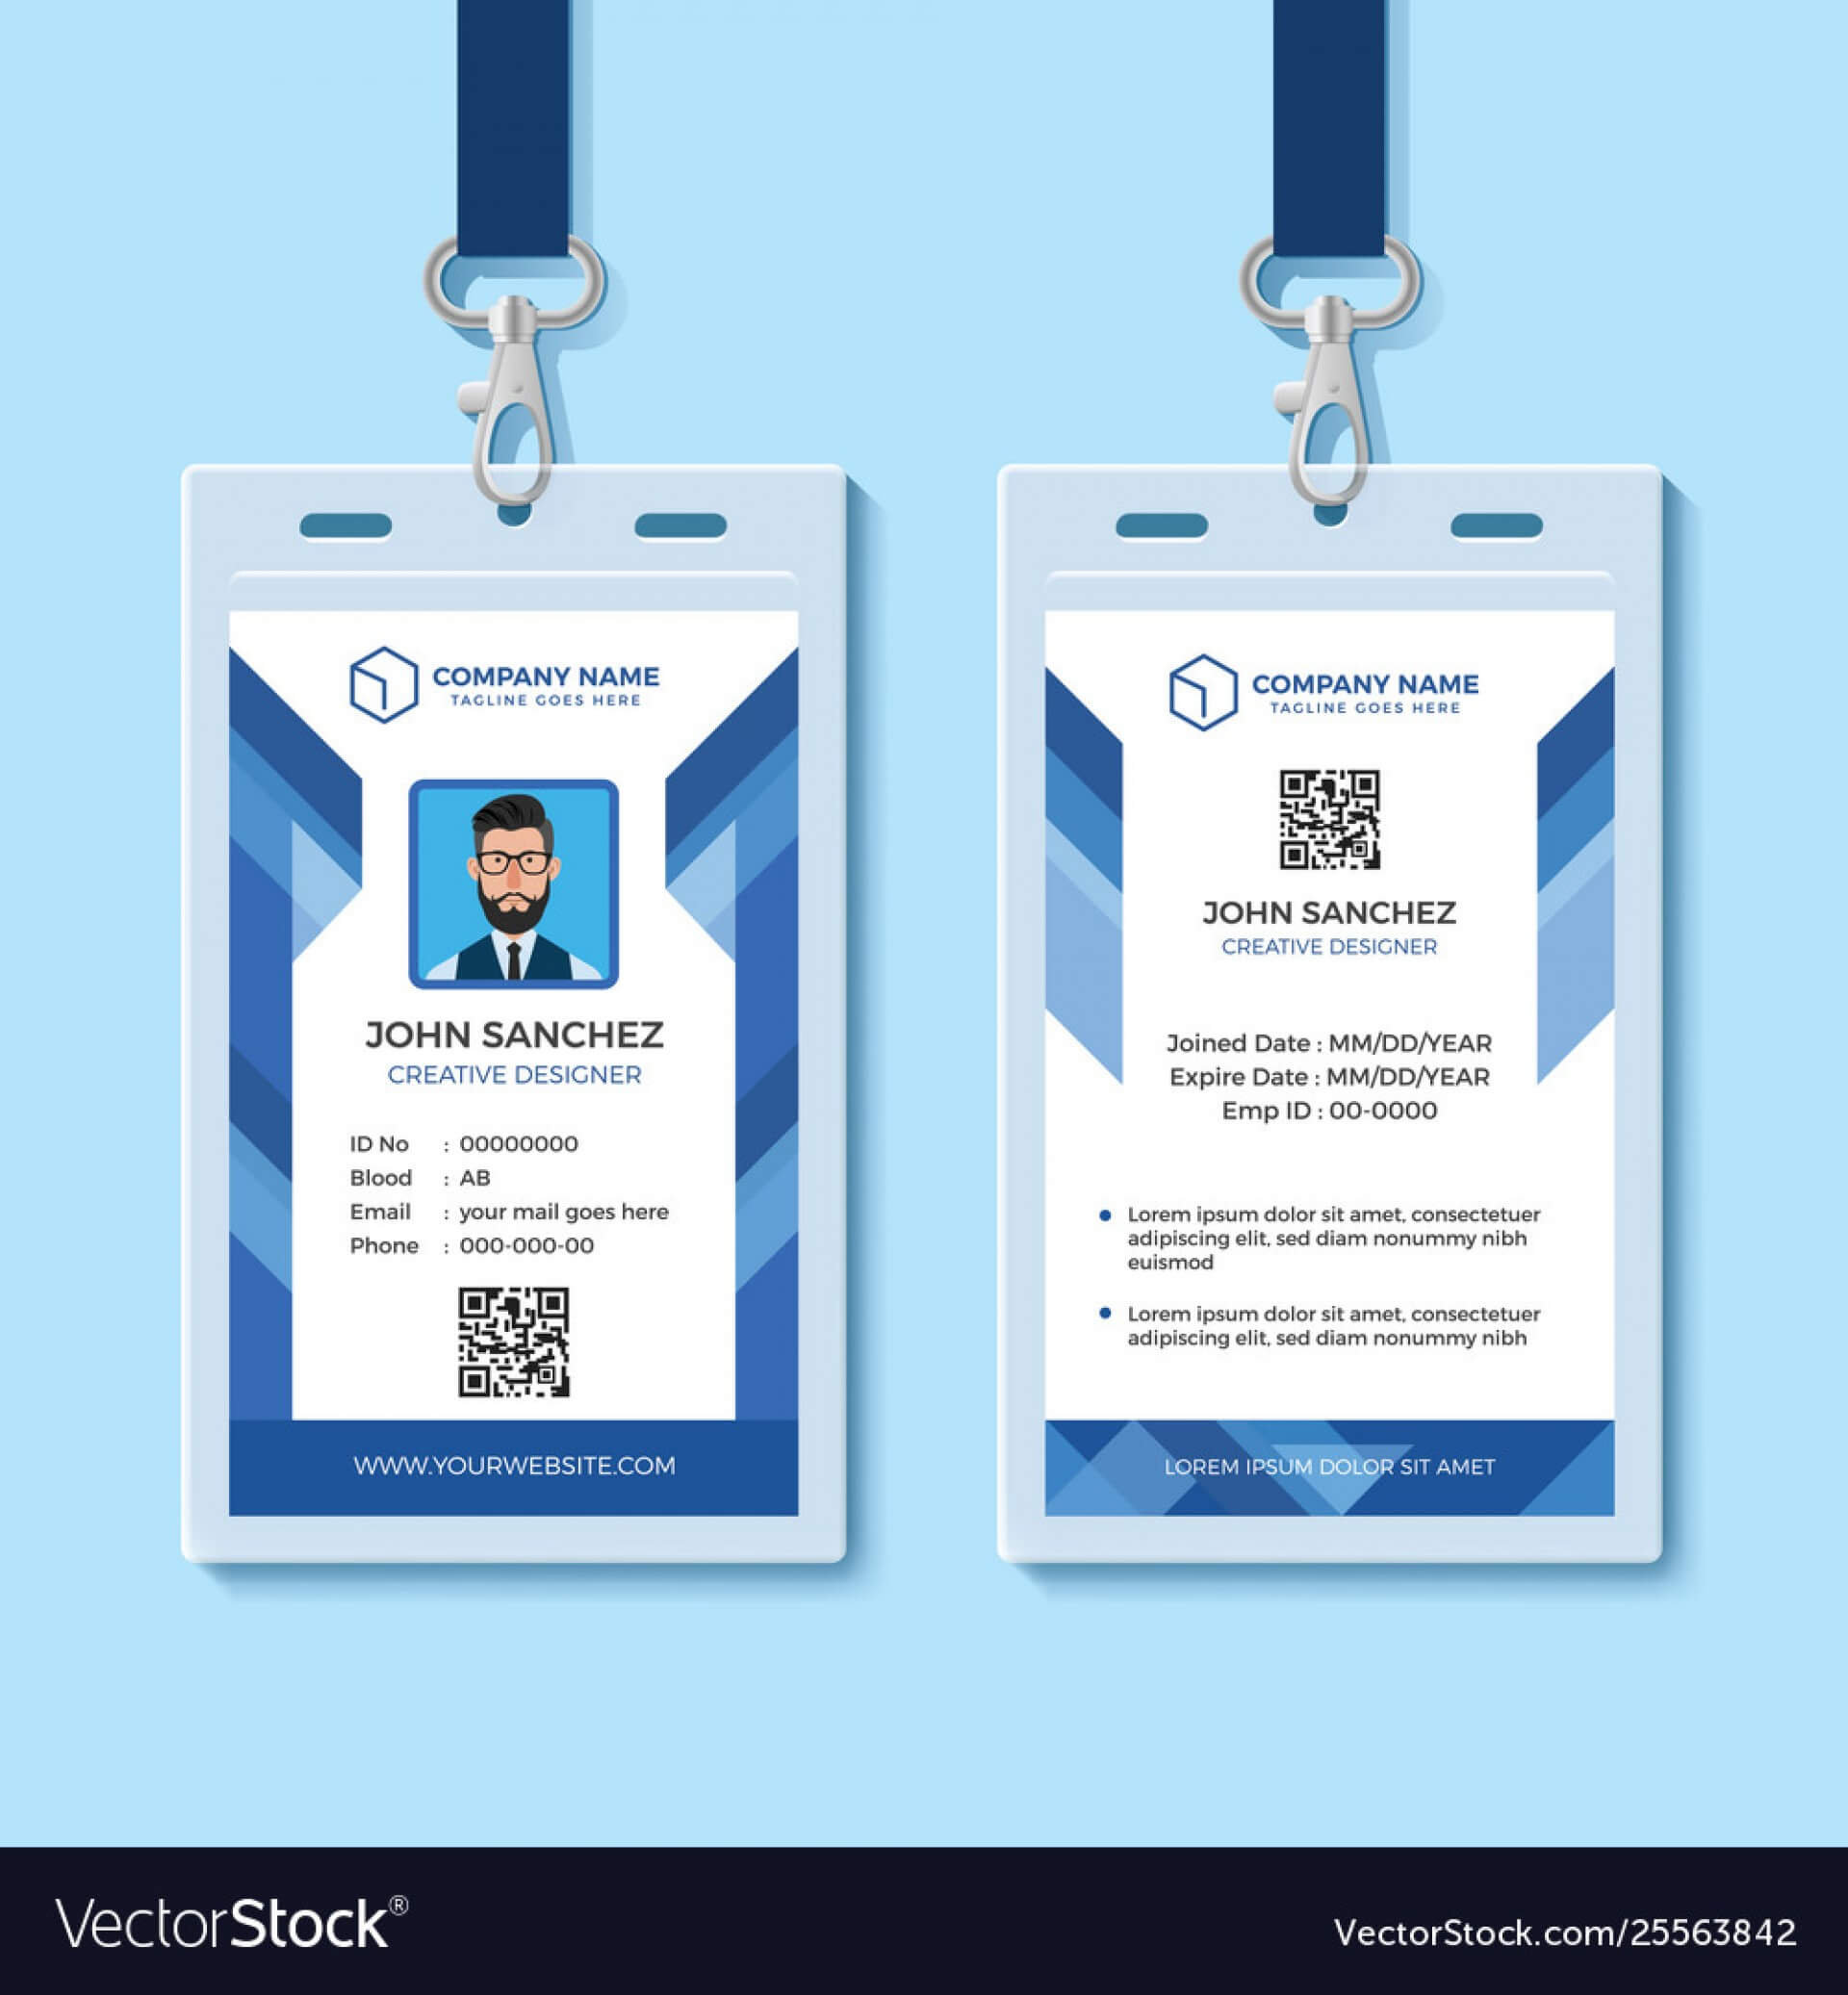 042 Template Ideas Employee Id Card Templates Blue Design With Id Card Template For Microsoft Word